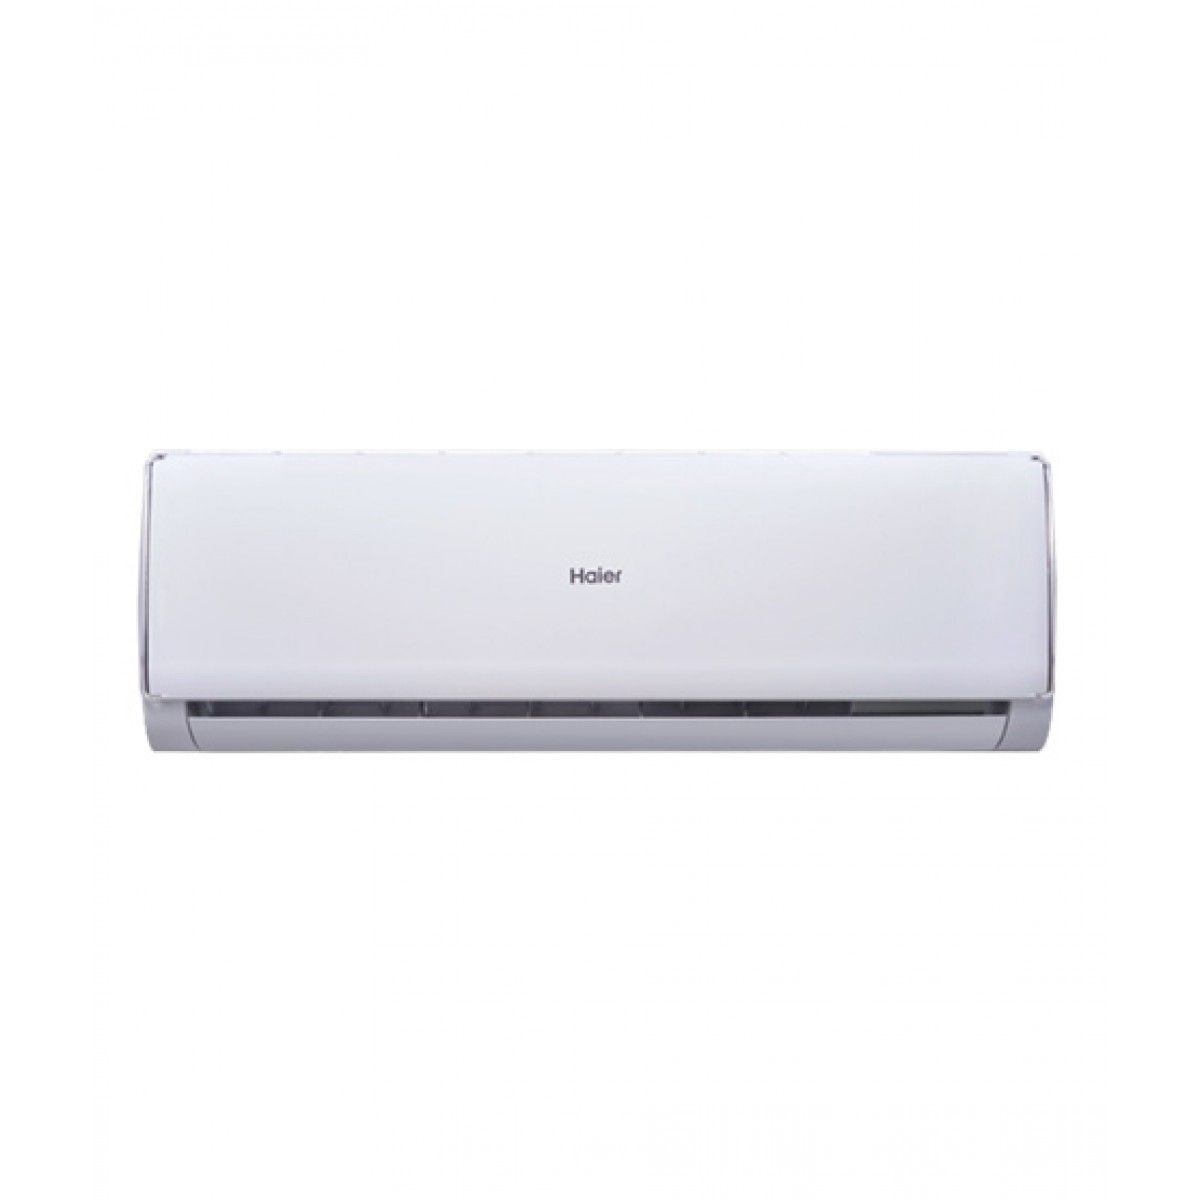 Haier 18LTH 1.5 Ton Wall Mounted Split AC